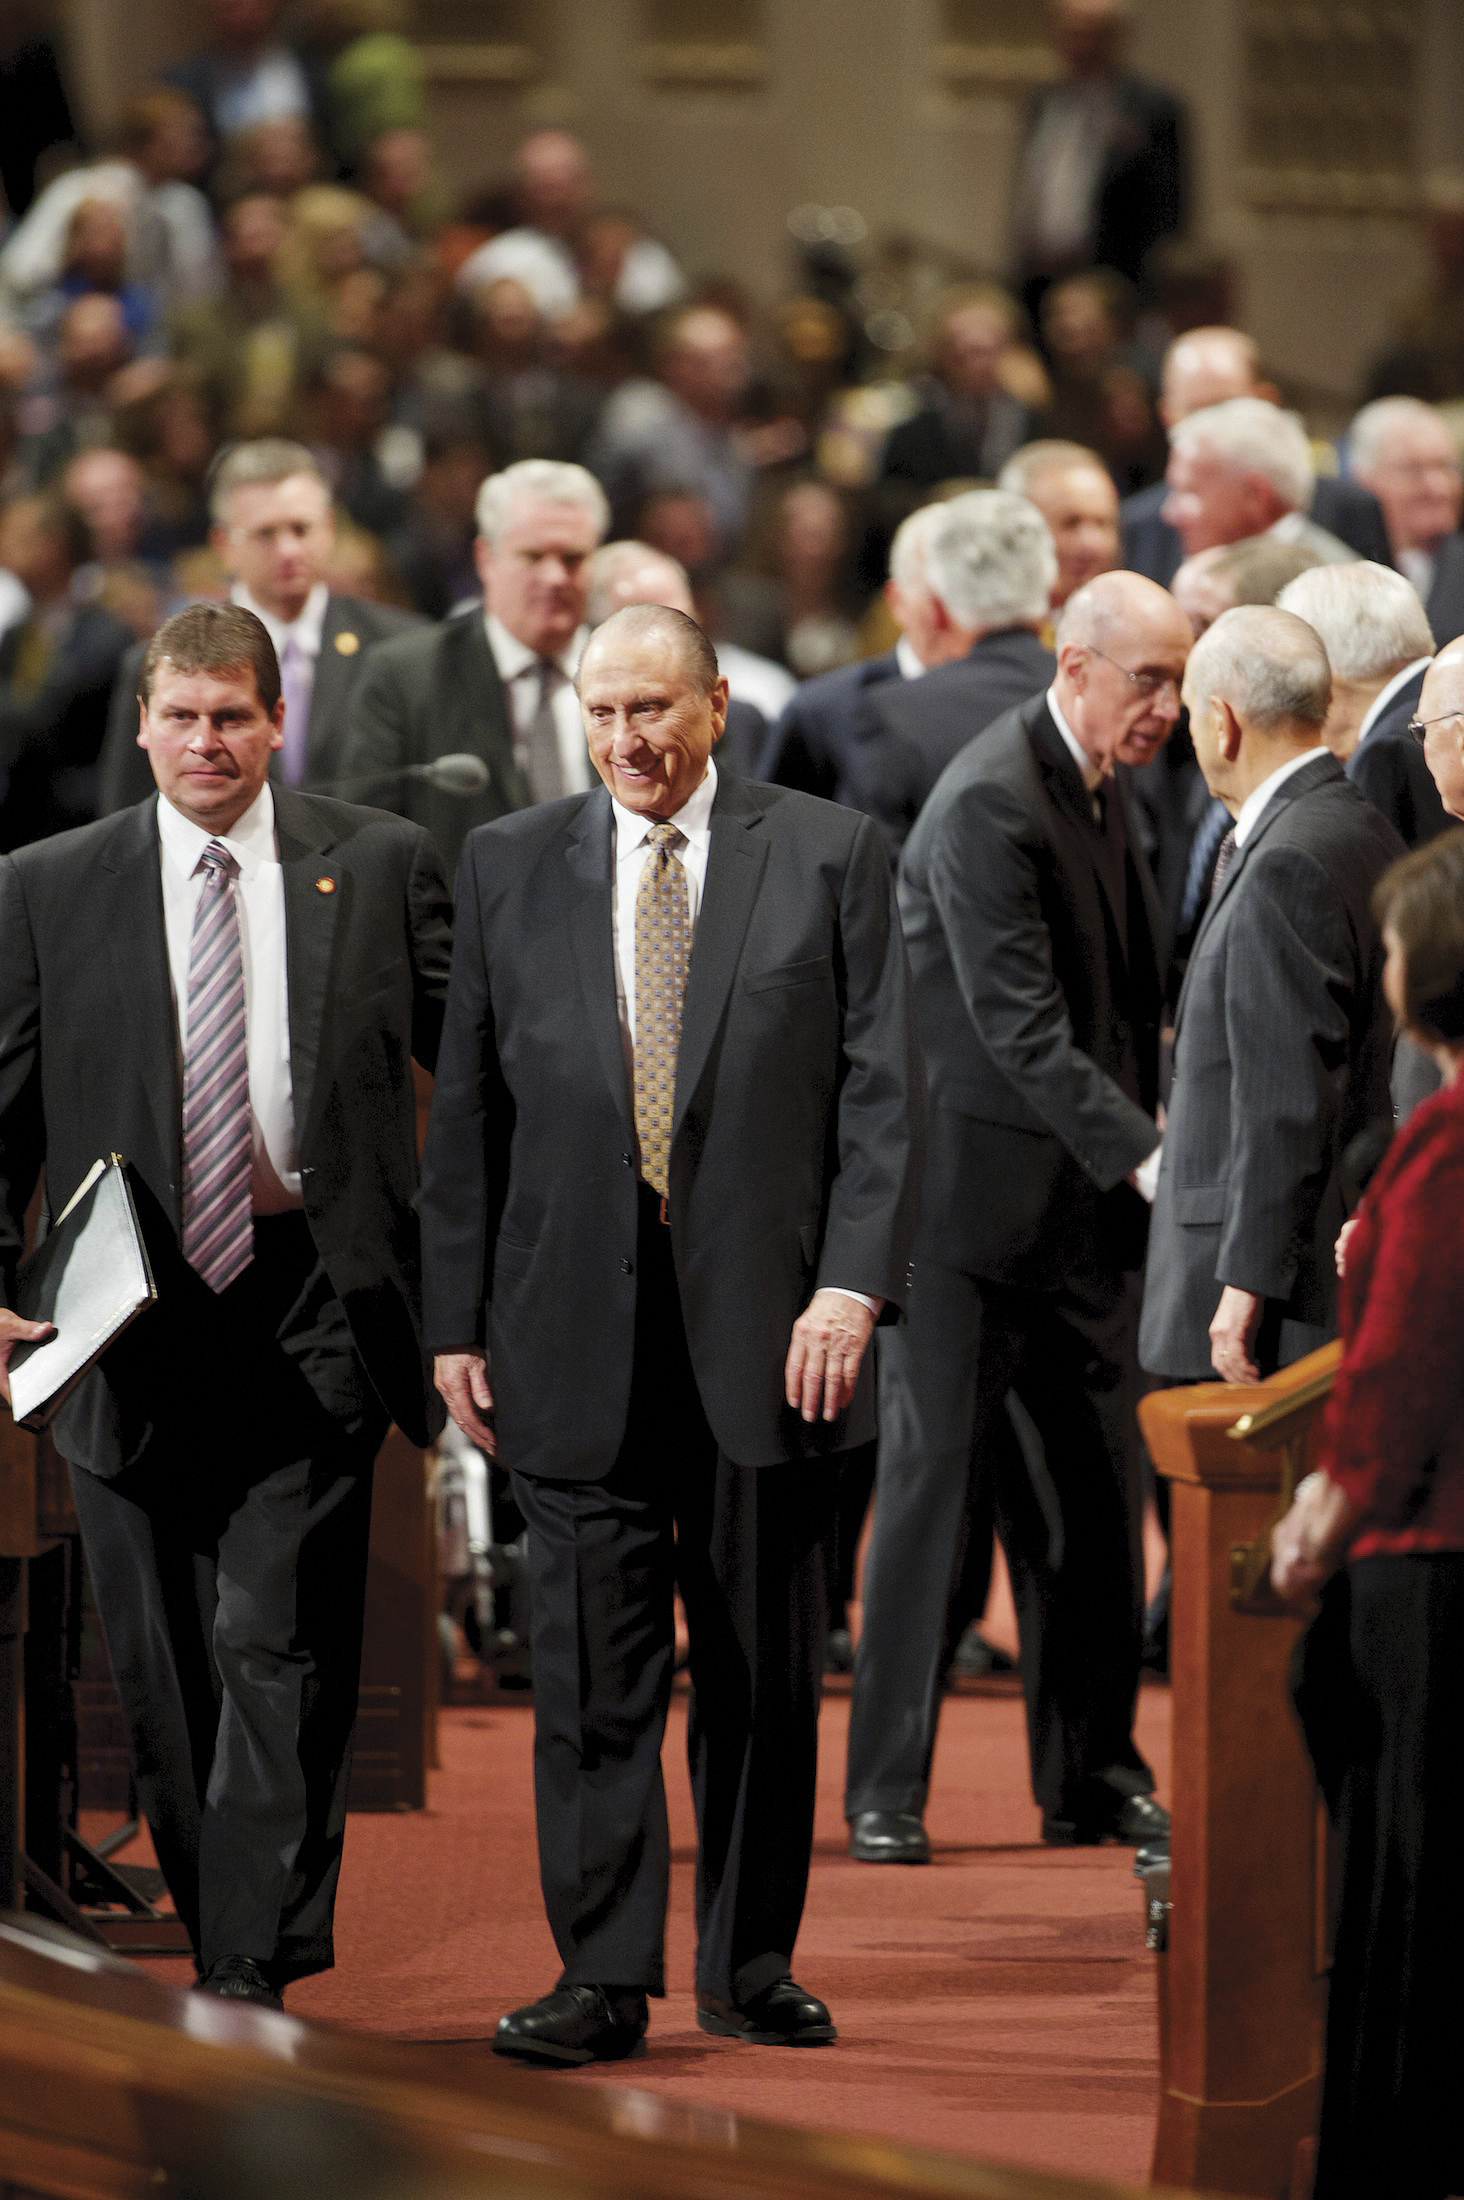 Thomas S. Monson exiting the Conference Center with his security guard.